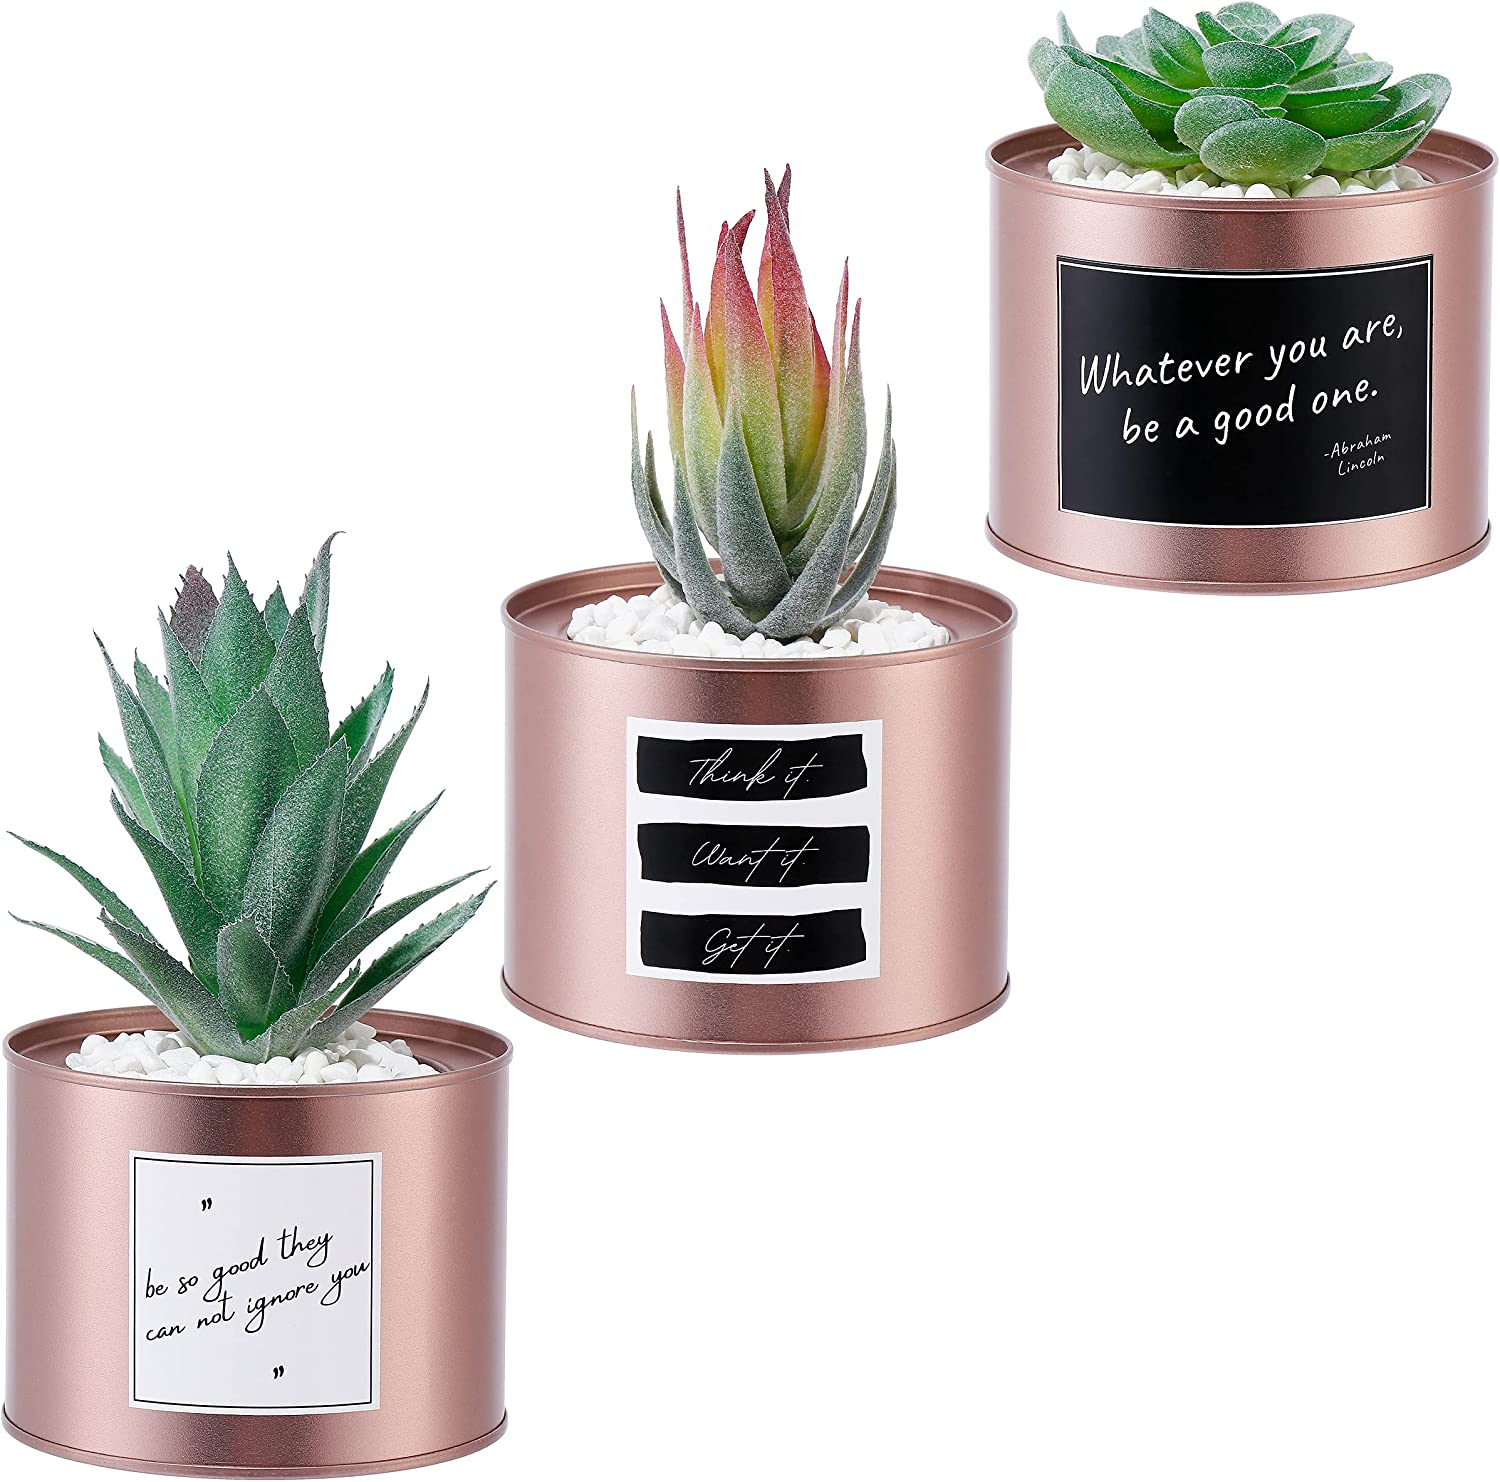 MAZER Set of 3 Succulent Plants in Rose Gold Pots, Fake Plants, Artificial Plants, Realistic Faux Greenery, Decor for Home, Office, Apartment, Bookshelf, Kitchen, 3.9 Inch, Decorations, Women Gift